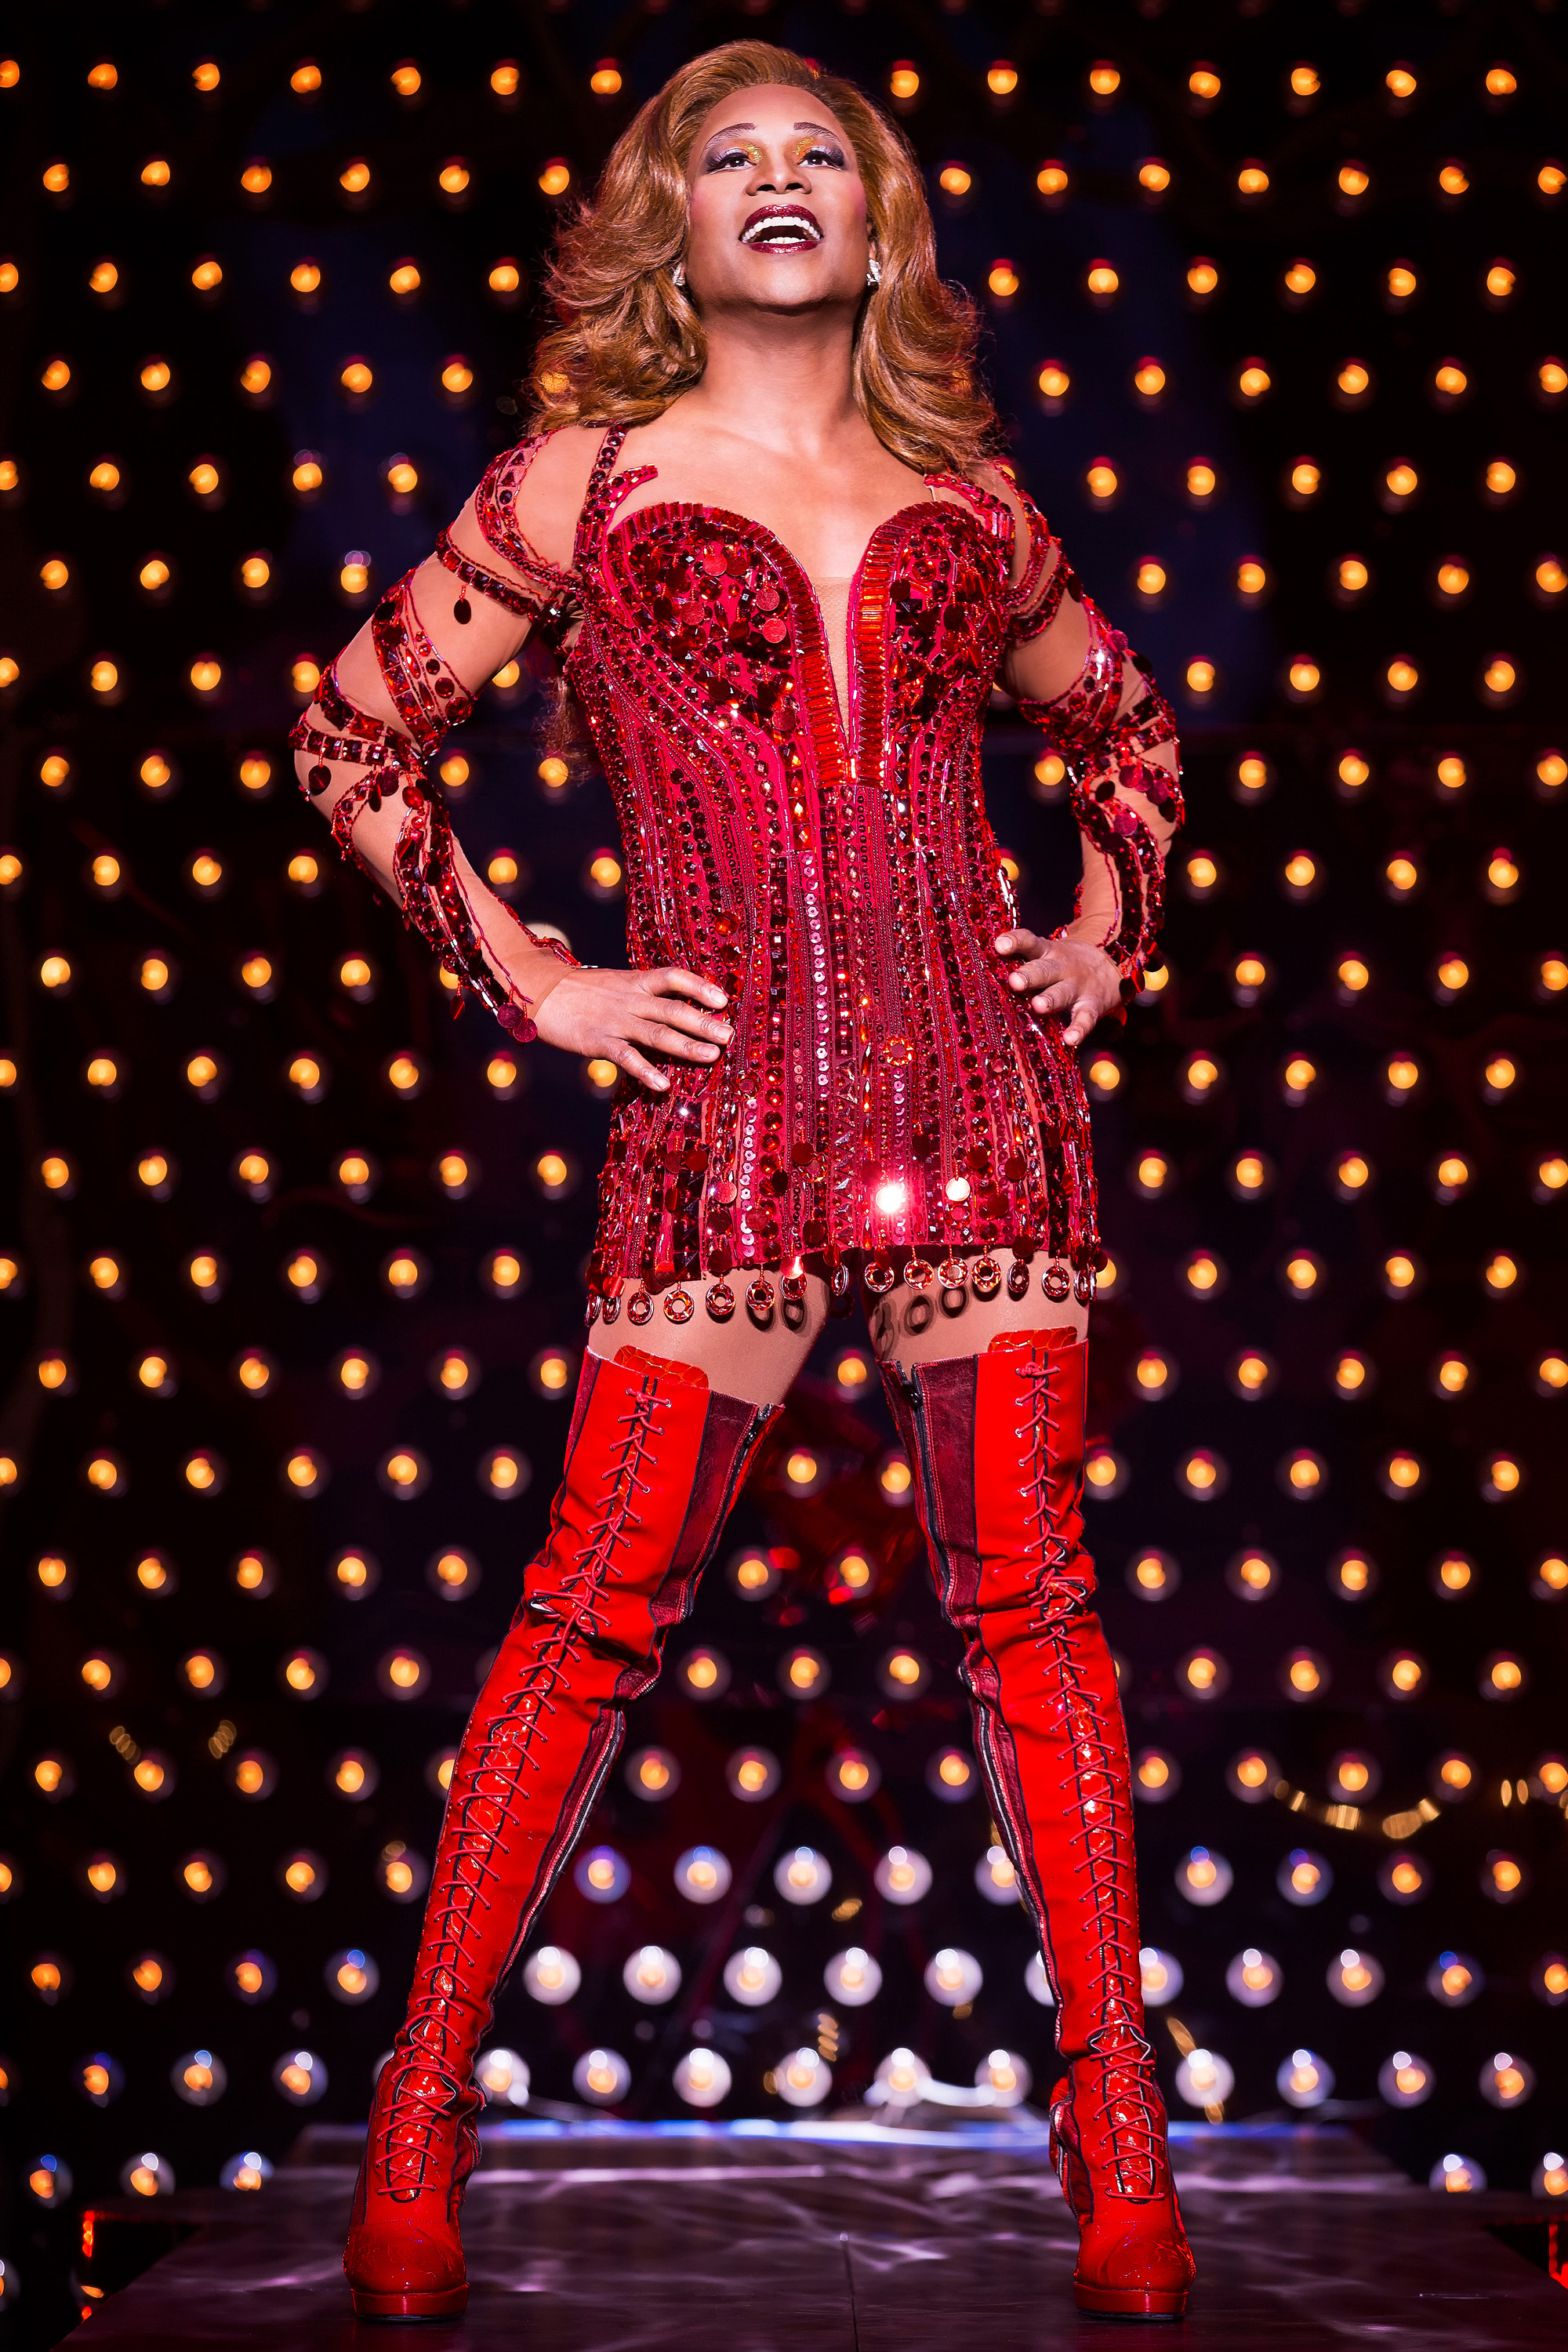 Kinky_Boots_Broadway_Billy_Porter_217_email